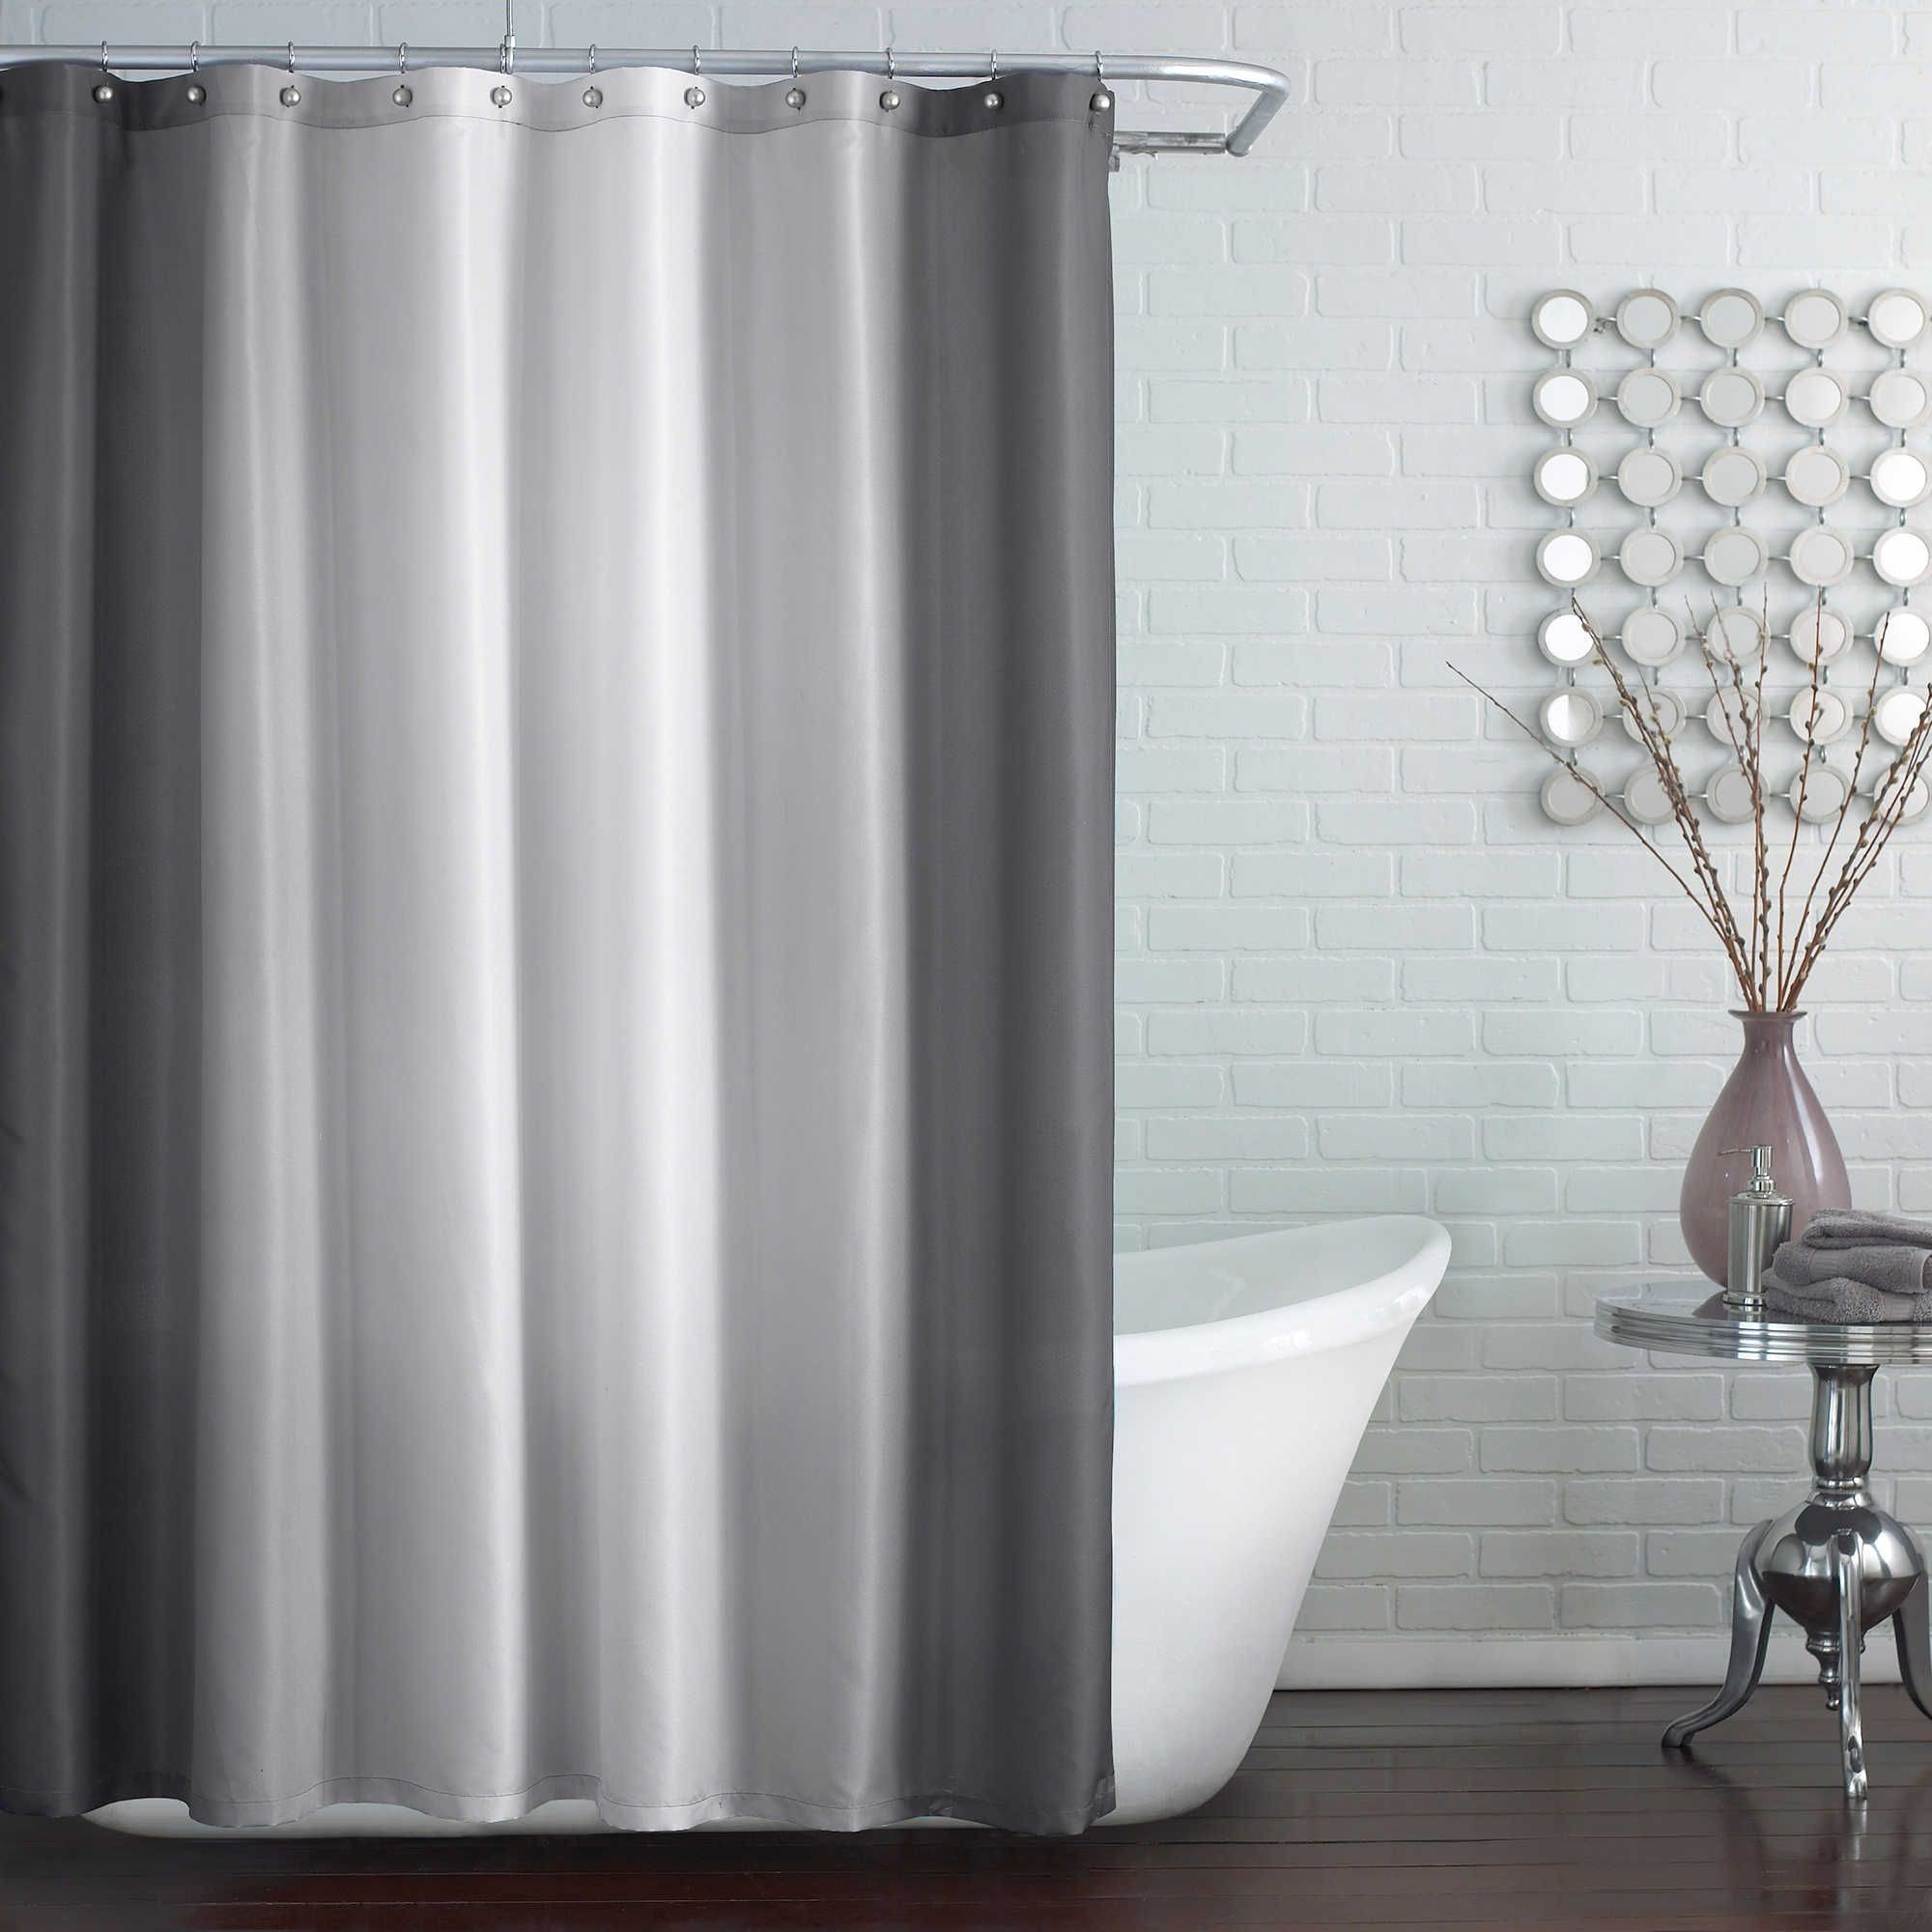 Luxury Extra Tall Shower Curtain Liner